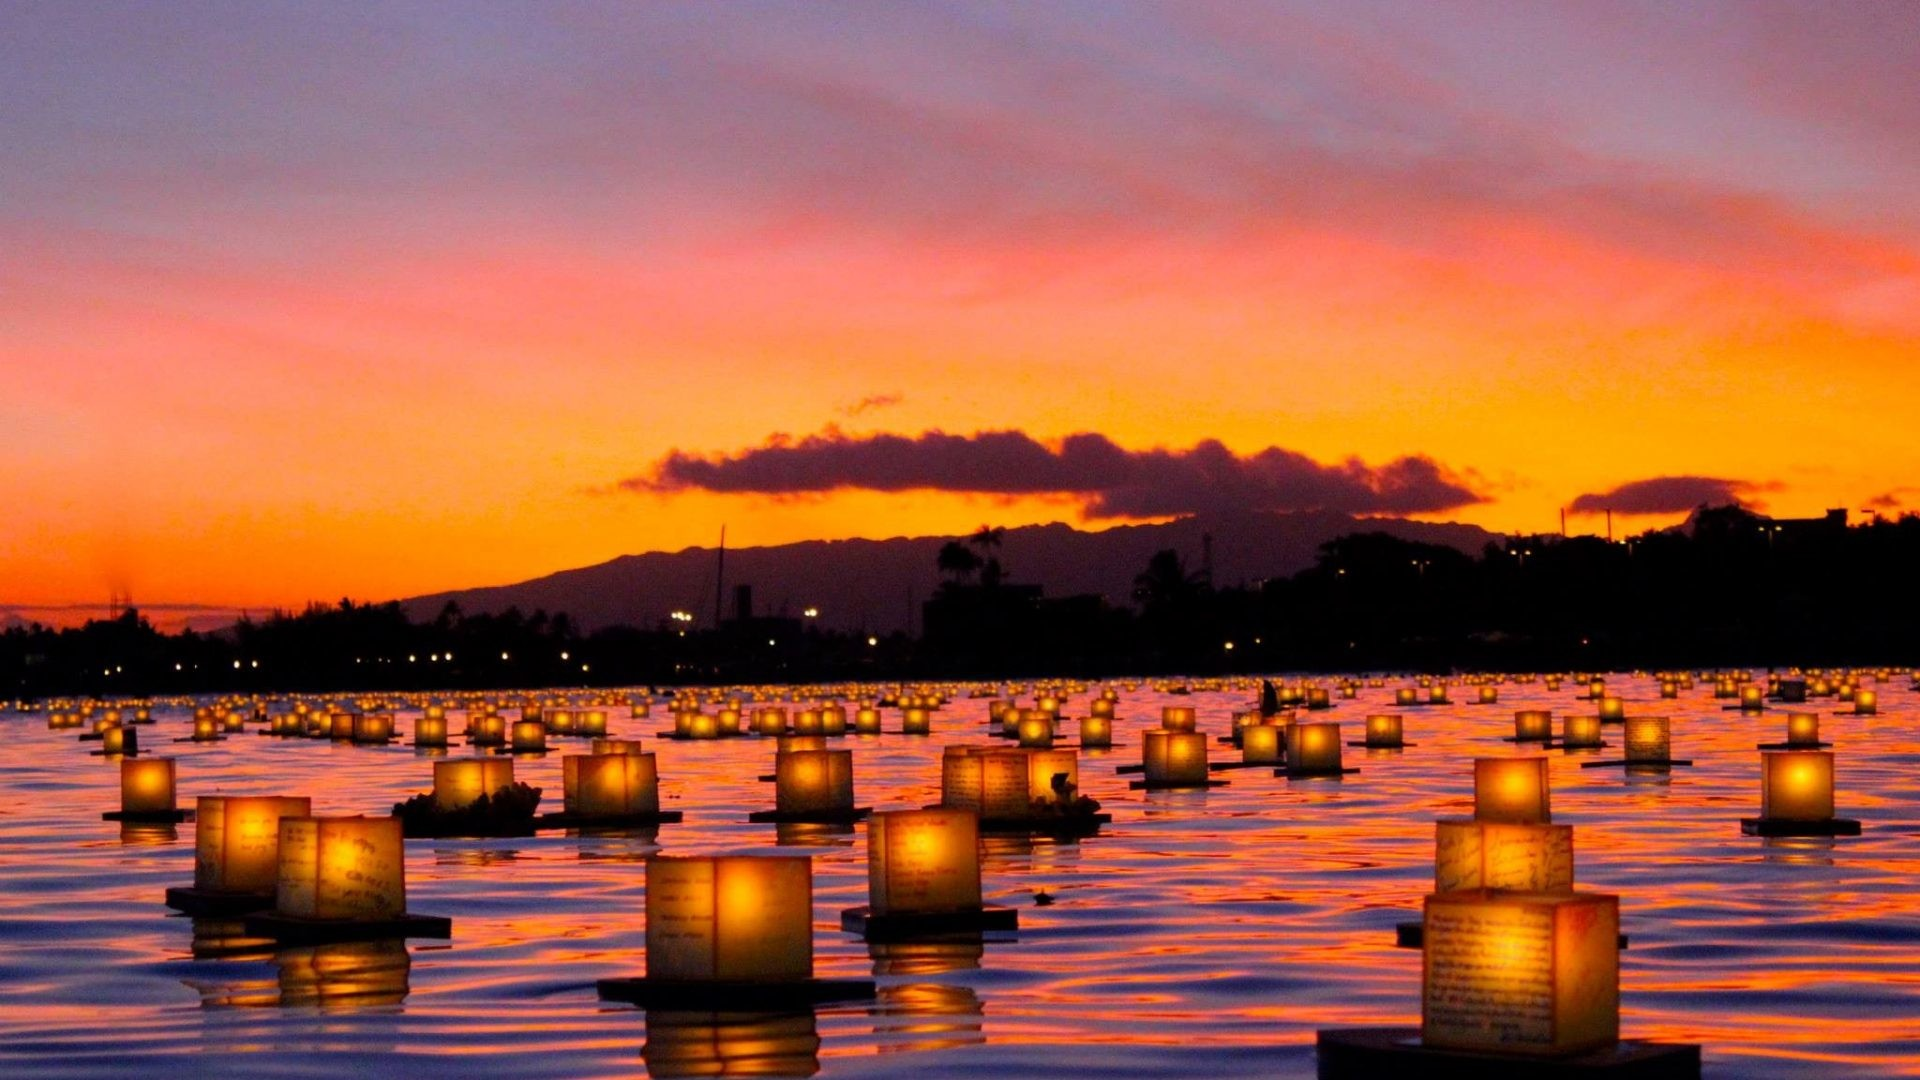 1920x1080 Island Tag - Candles Memory Wold Honolulu Beach Set Dusk Twilight Sun Oahu  Lit Polynesia Orange